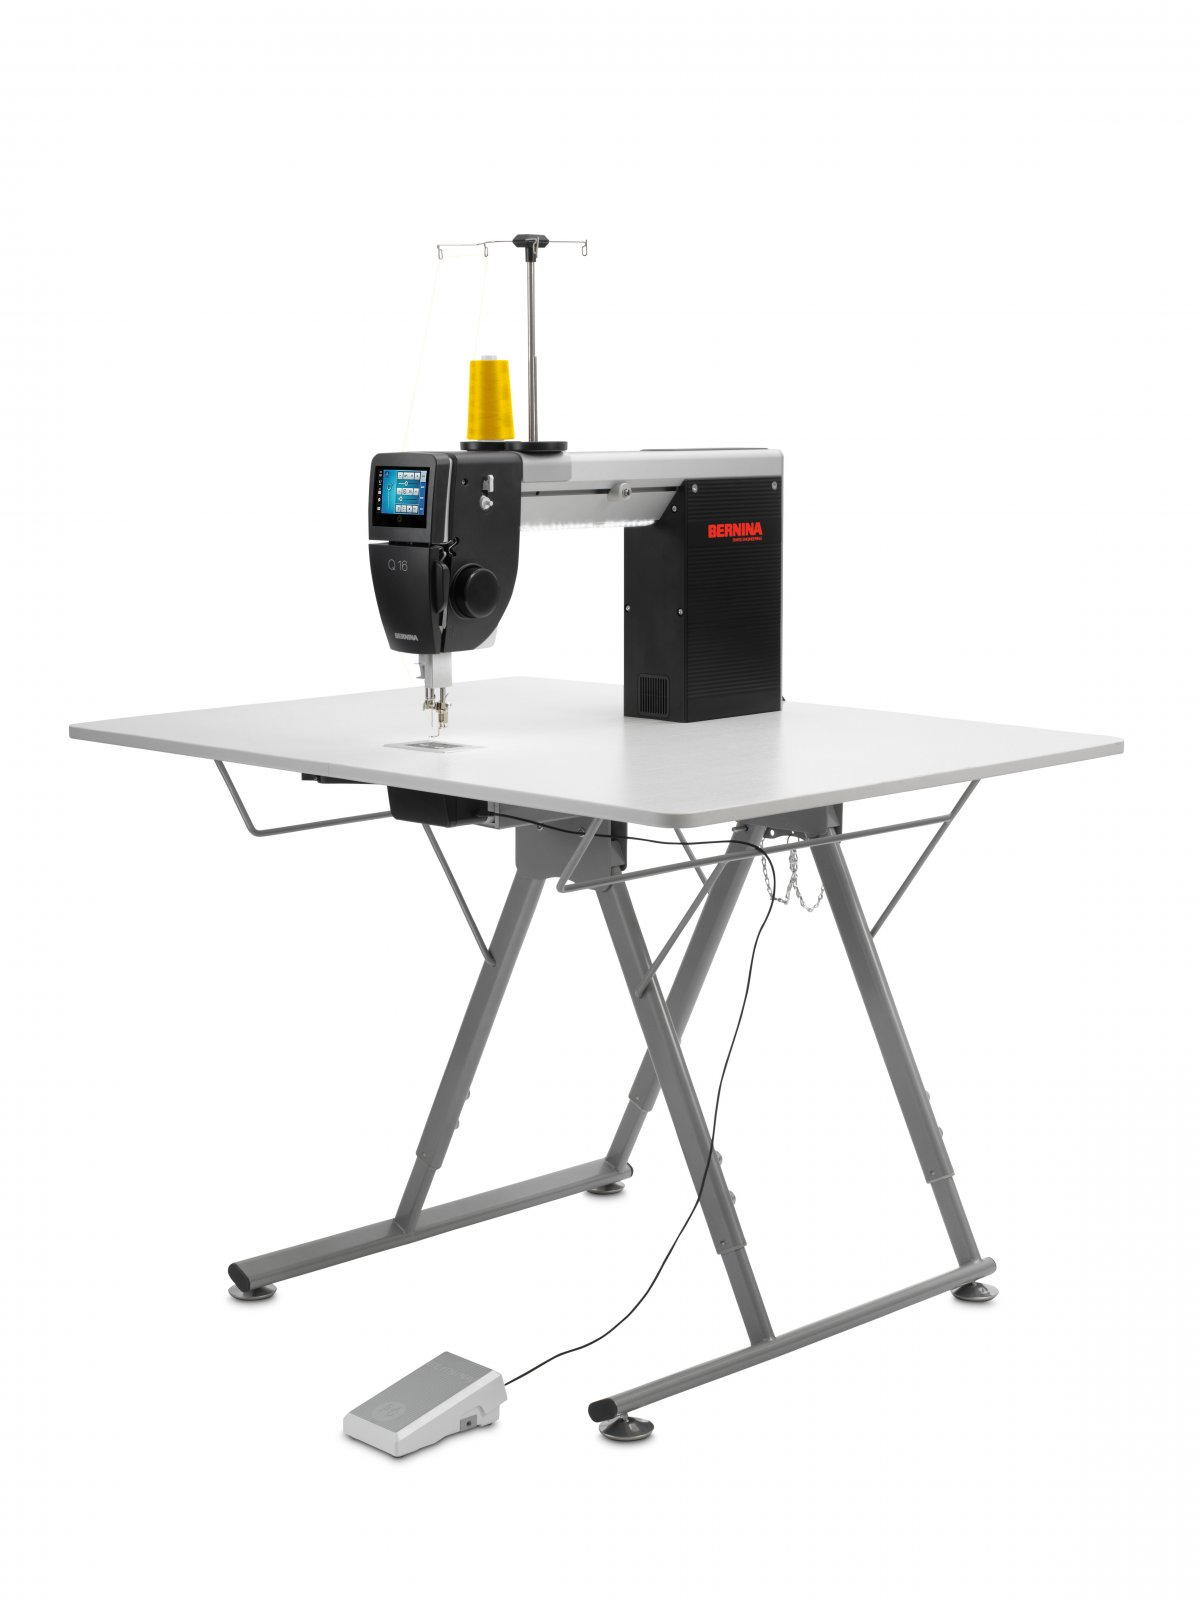 Q16 Sitdown Longarm with folding table